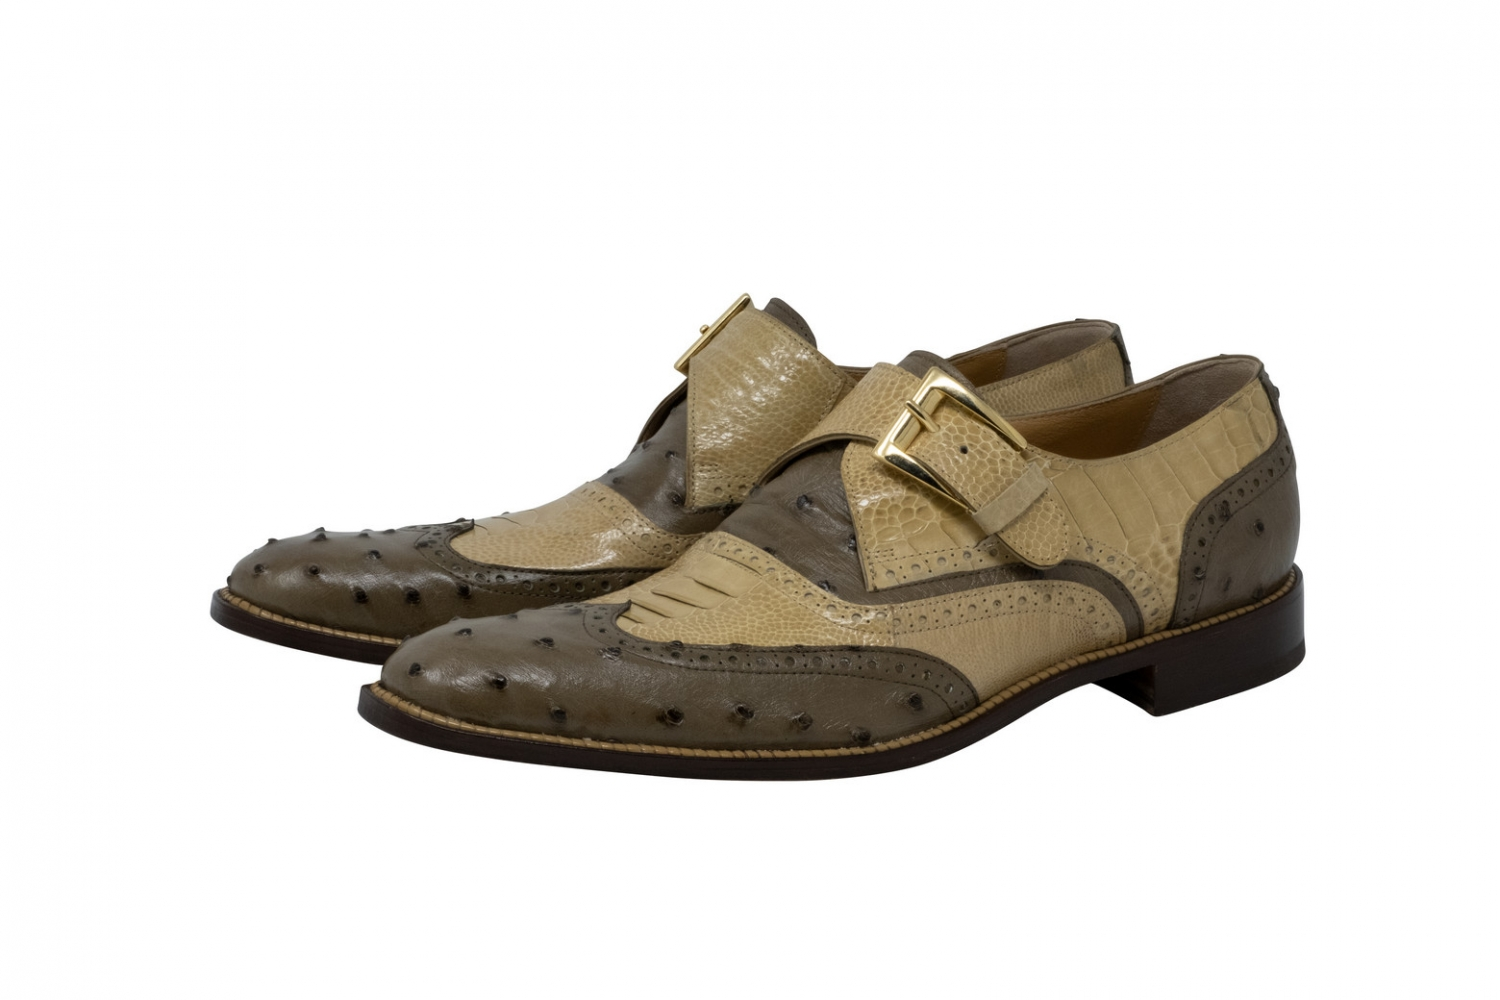 2020 Mauri Corleon Ostrich Single Monk Strap Shoe 3040